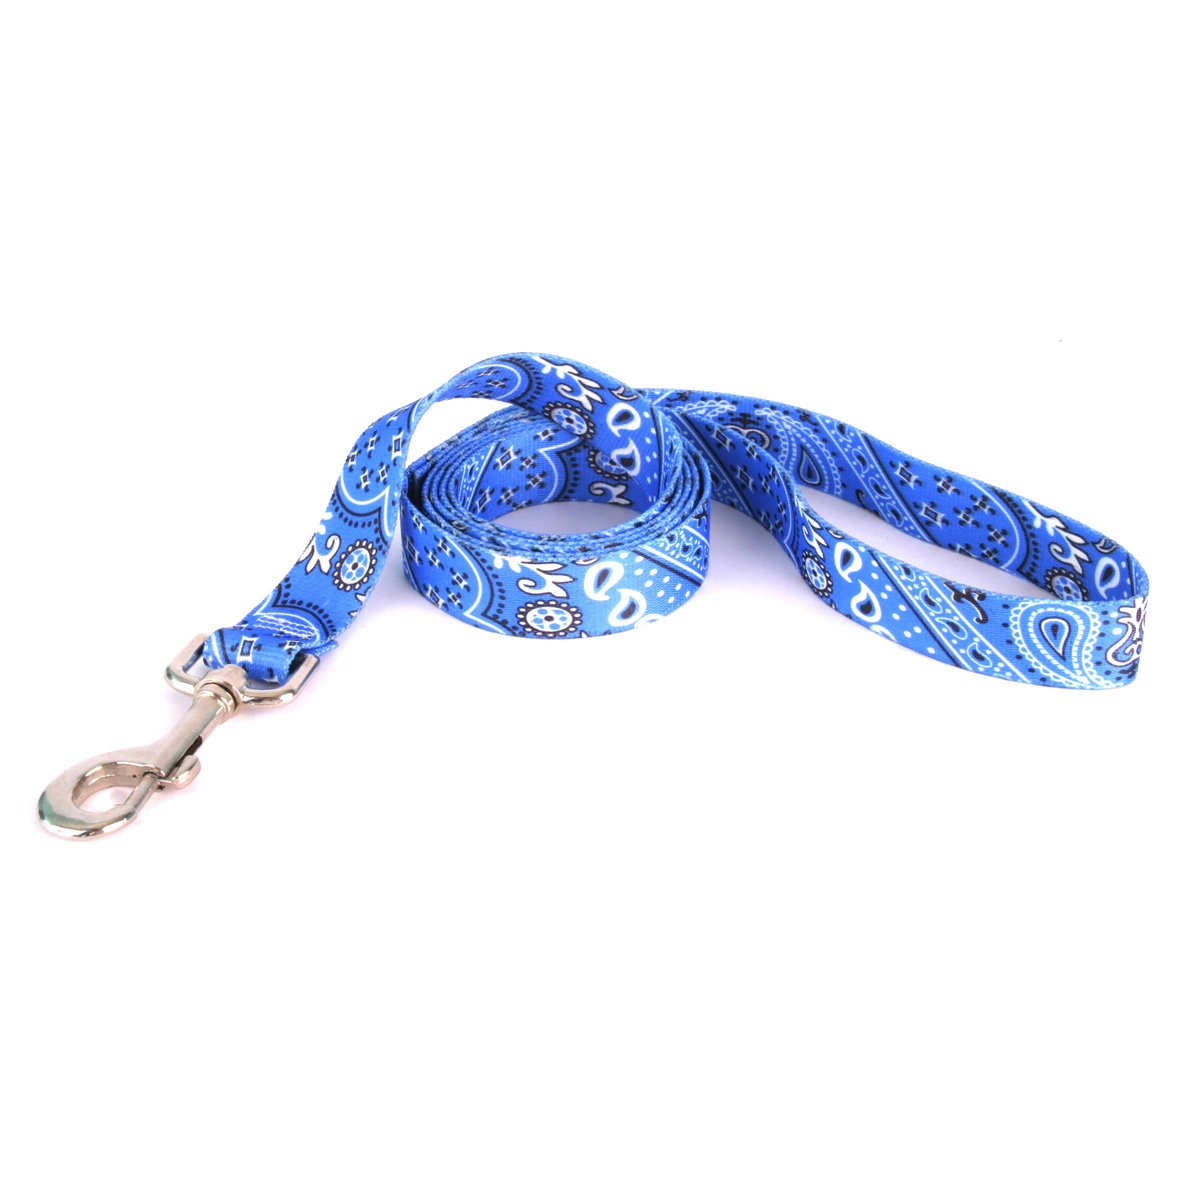 Bandana Dog Leash by Yellow Dog - Blue